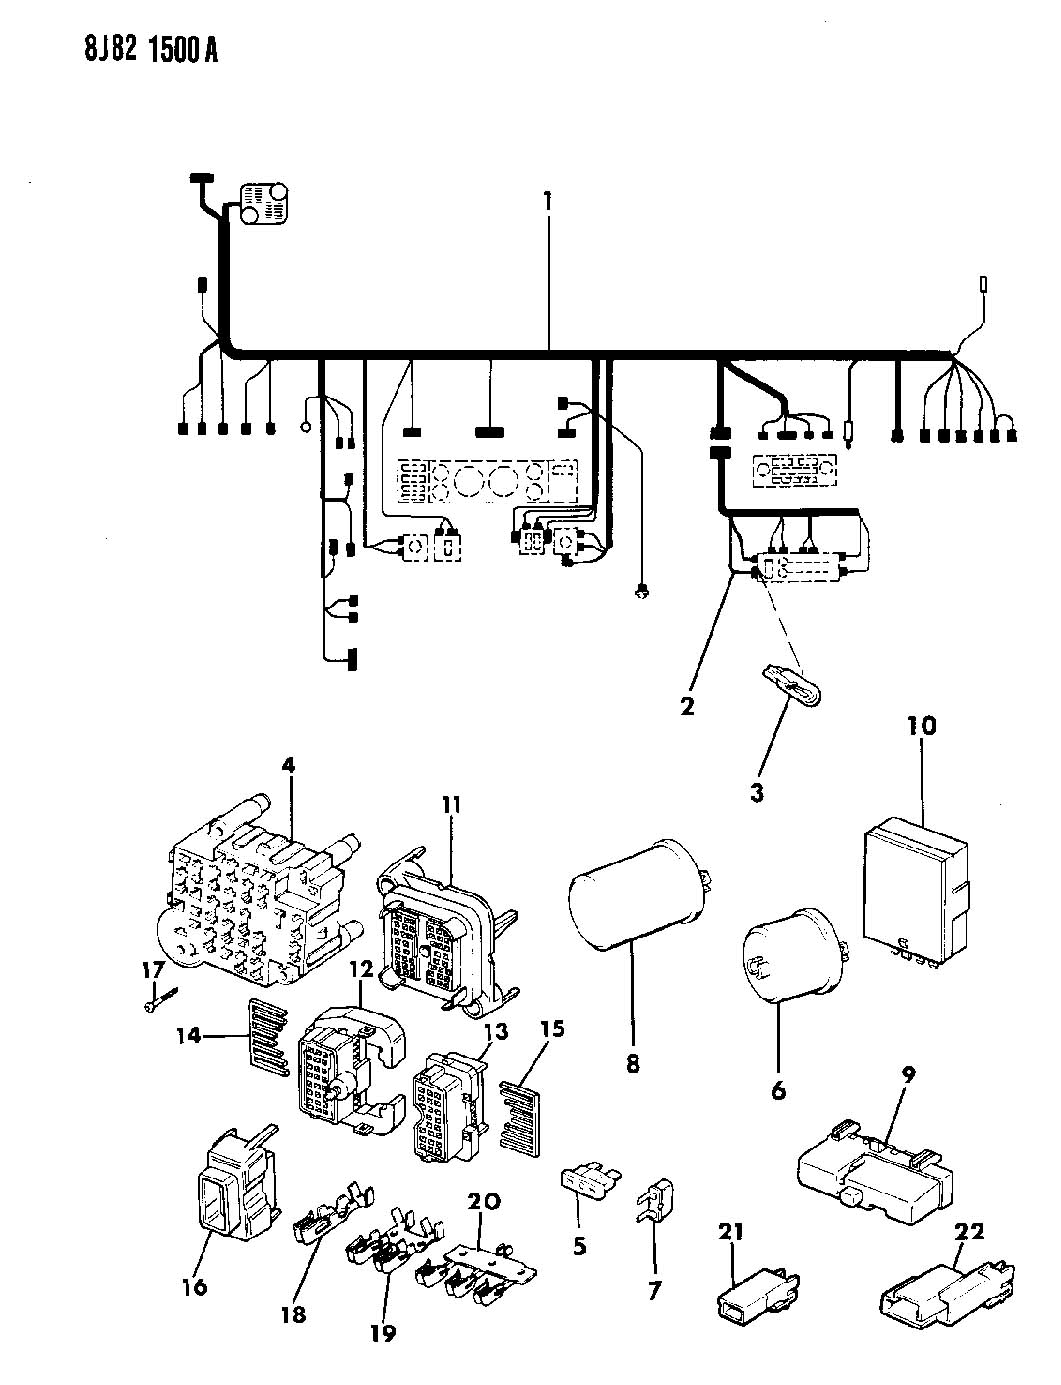 Dodge D250 Wiring Diagram. Dodge. Wiring Diagram Images